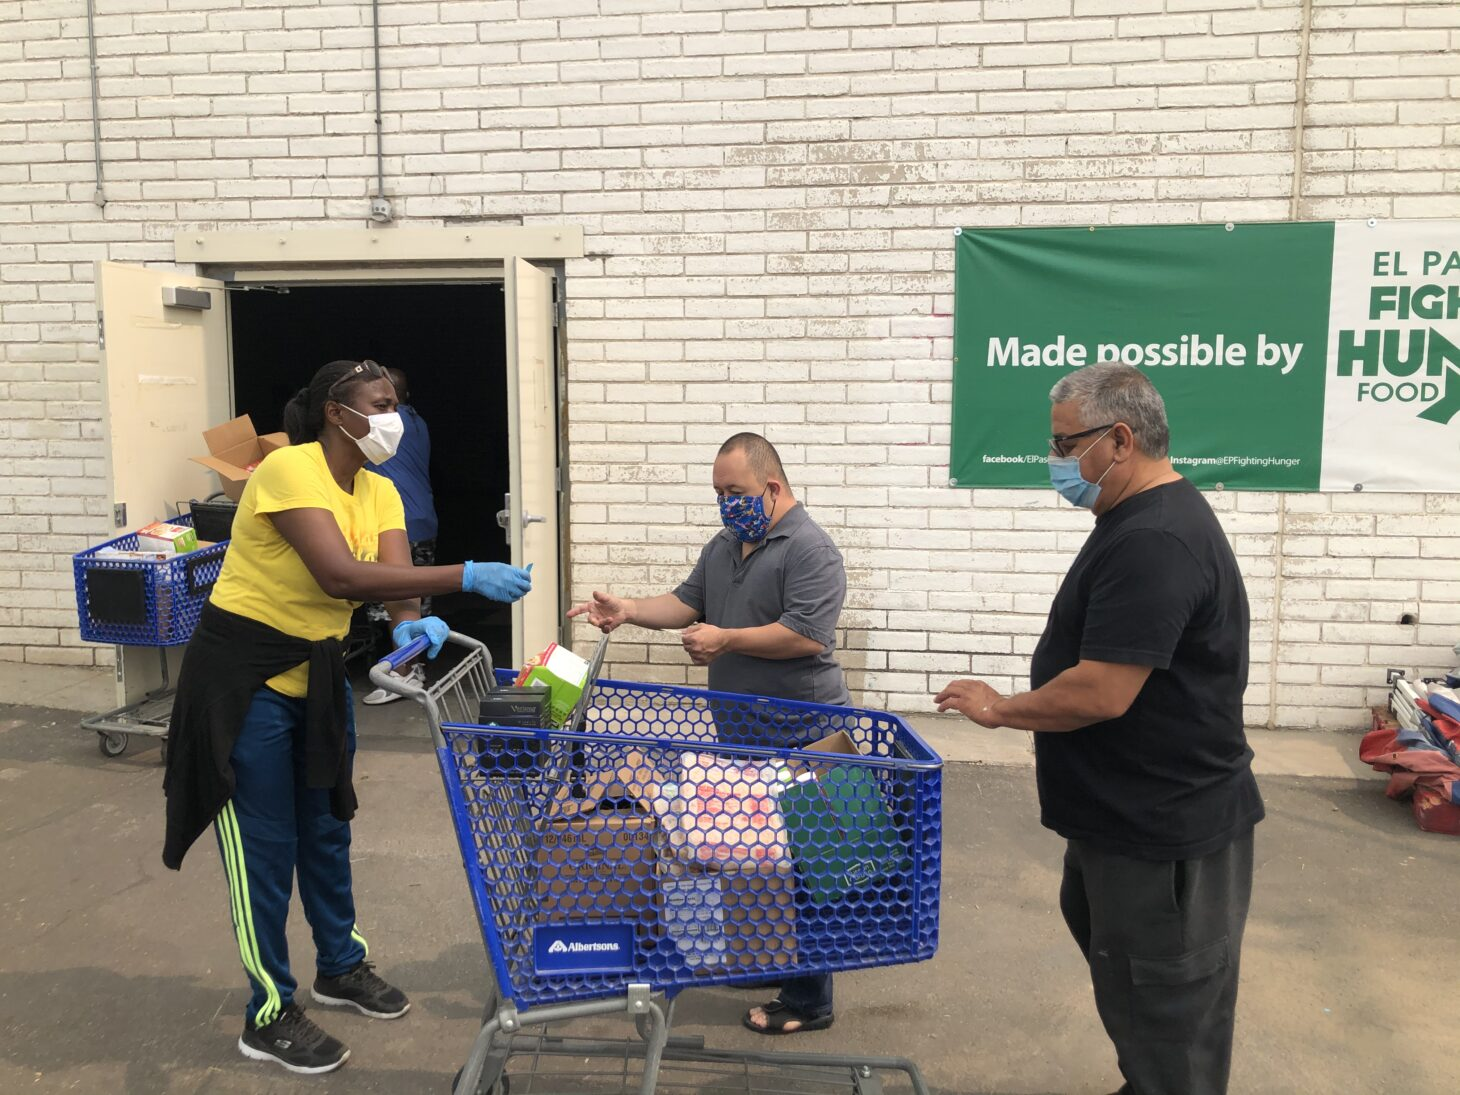 """We are grateful for Albertsons support and commitment to the community,"" said Warren E. Goodell, Executive Director of Kelly Center for Hunger Relief. 